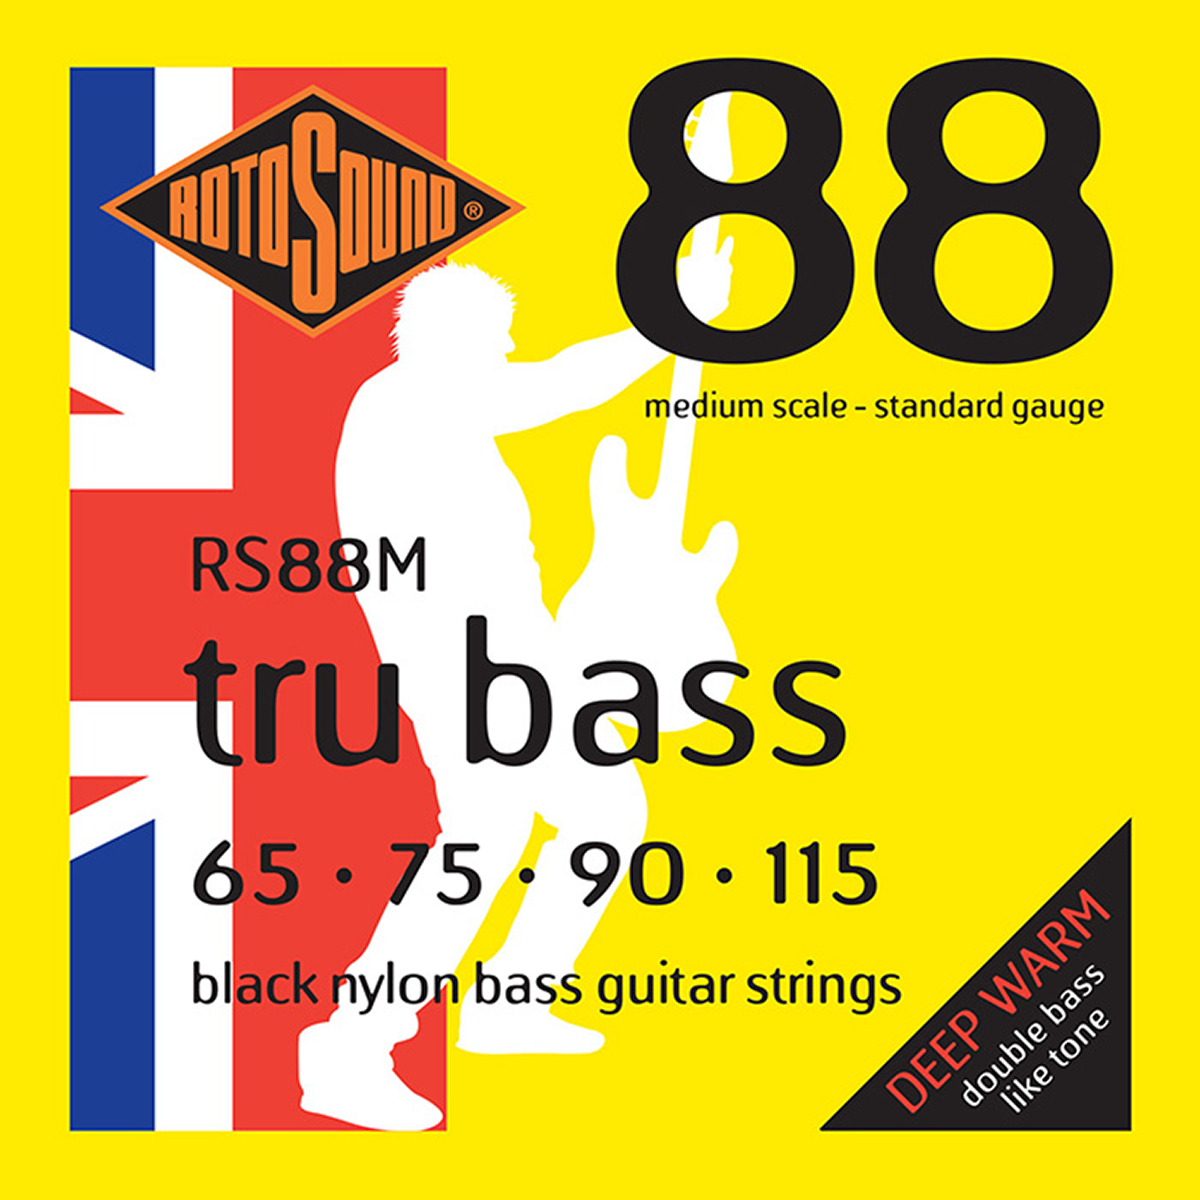 Rotosound RS88M Tru Bass Black Nylon Medium Scale Standard 65-115 Bass Strings